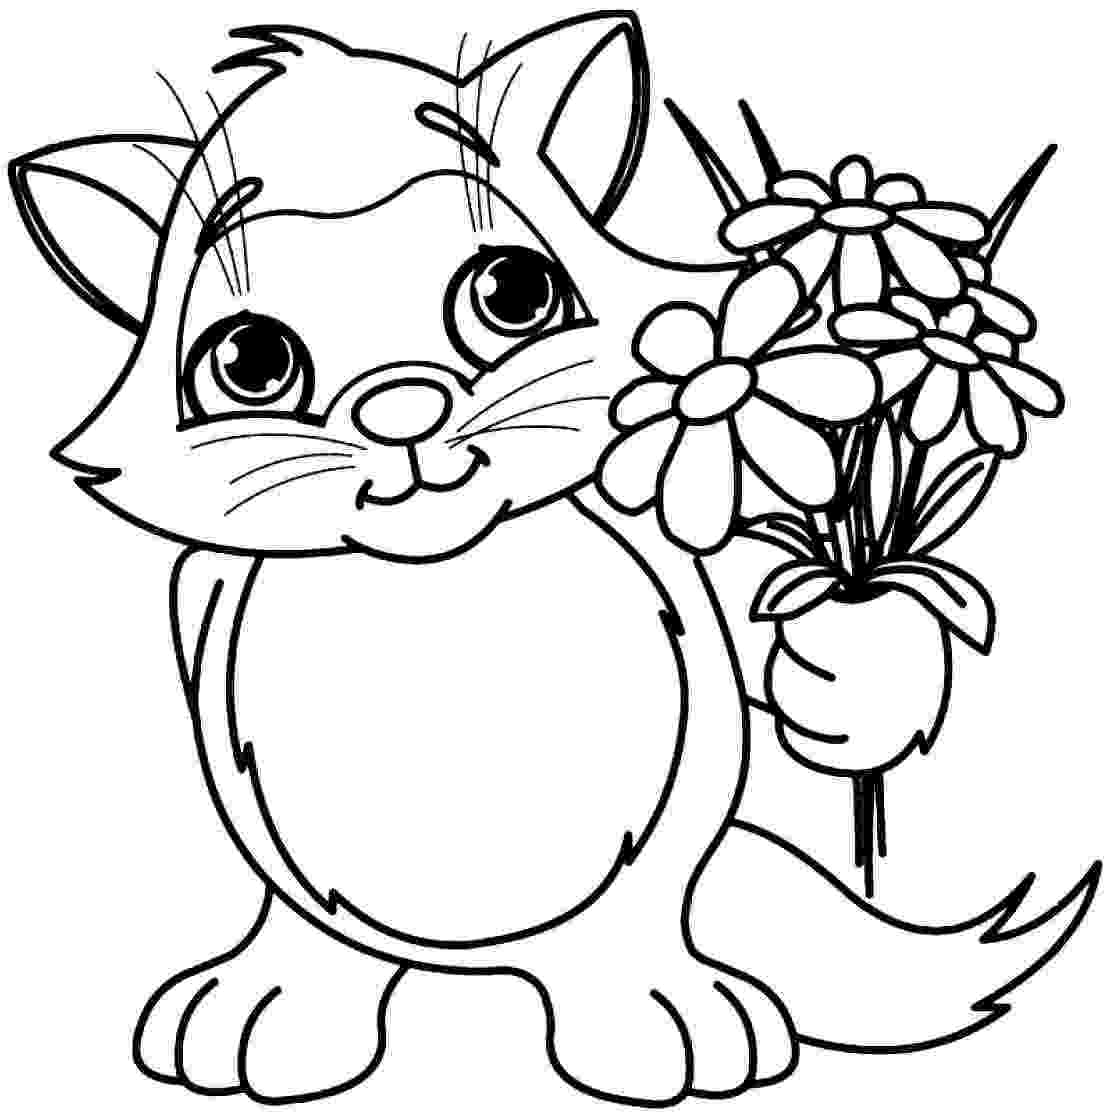 free printable flowers to color free printable flower coloring pages for kids best flowers free to printable color